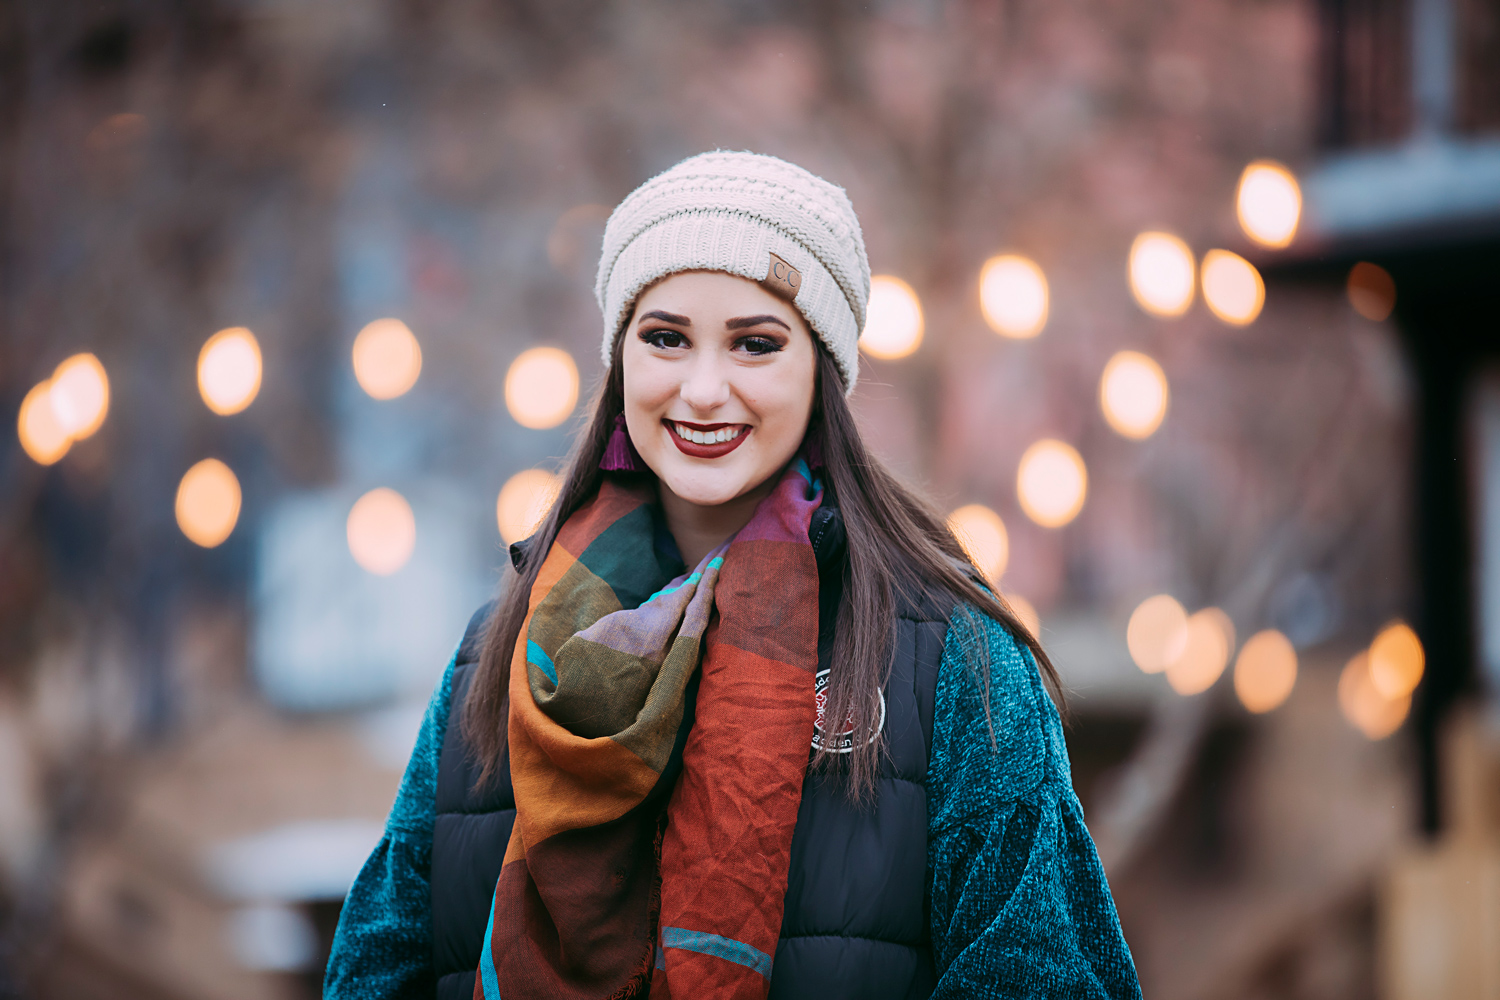 High school senior girl wearing tan hat standing in front of Christmas lights in downtown Oklahoma City by Amanda Lynn Photography.